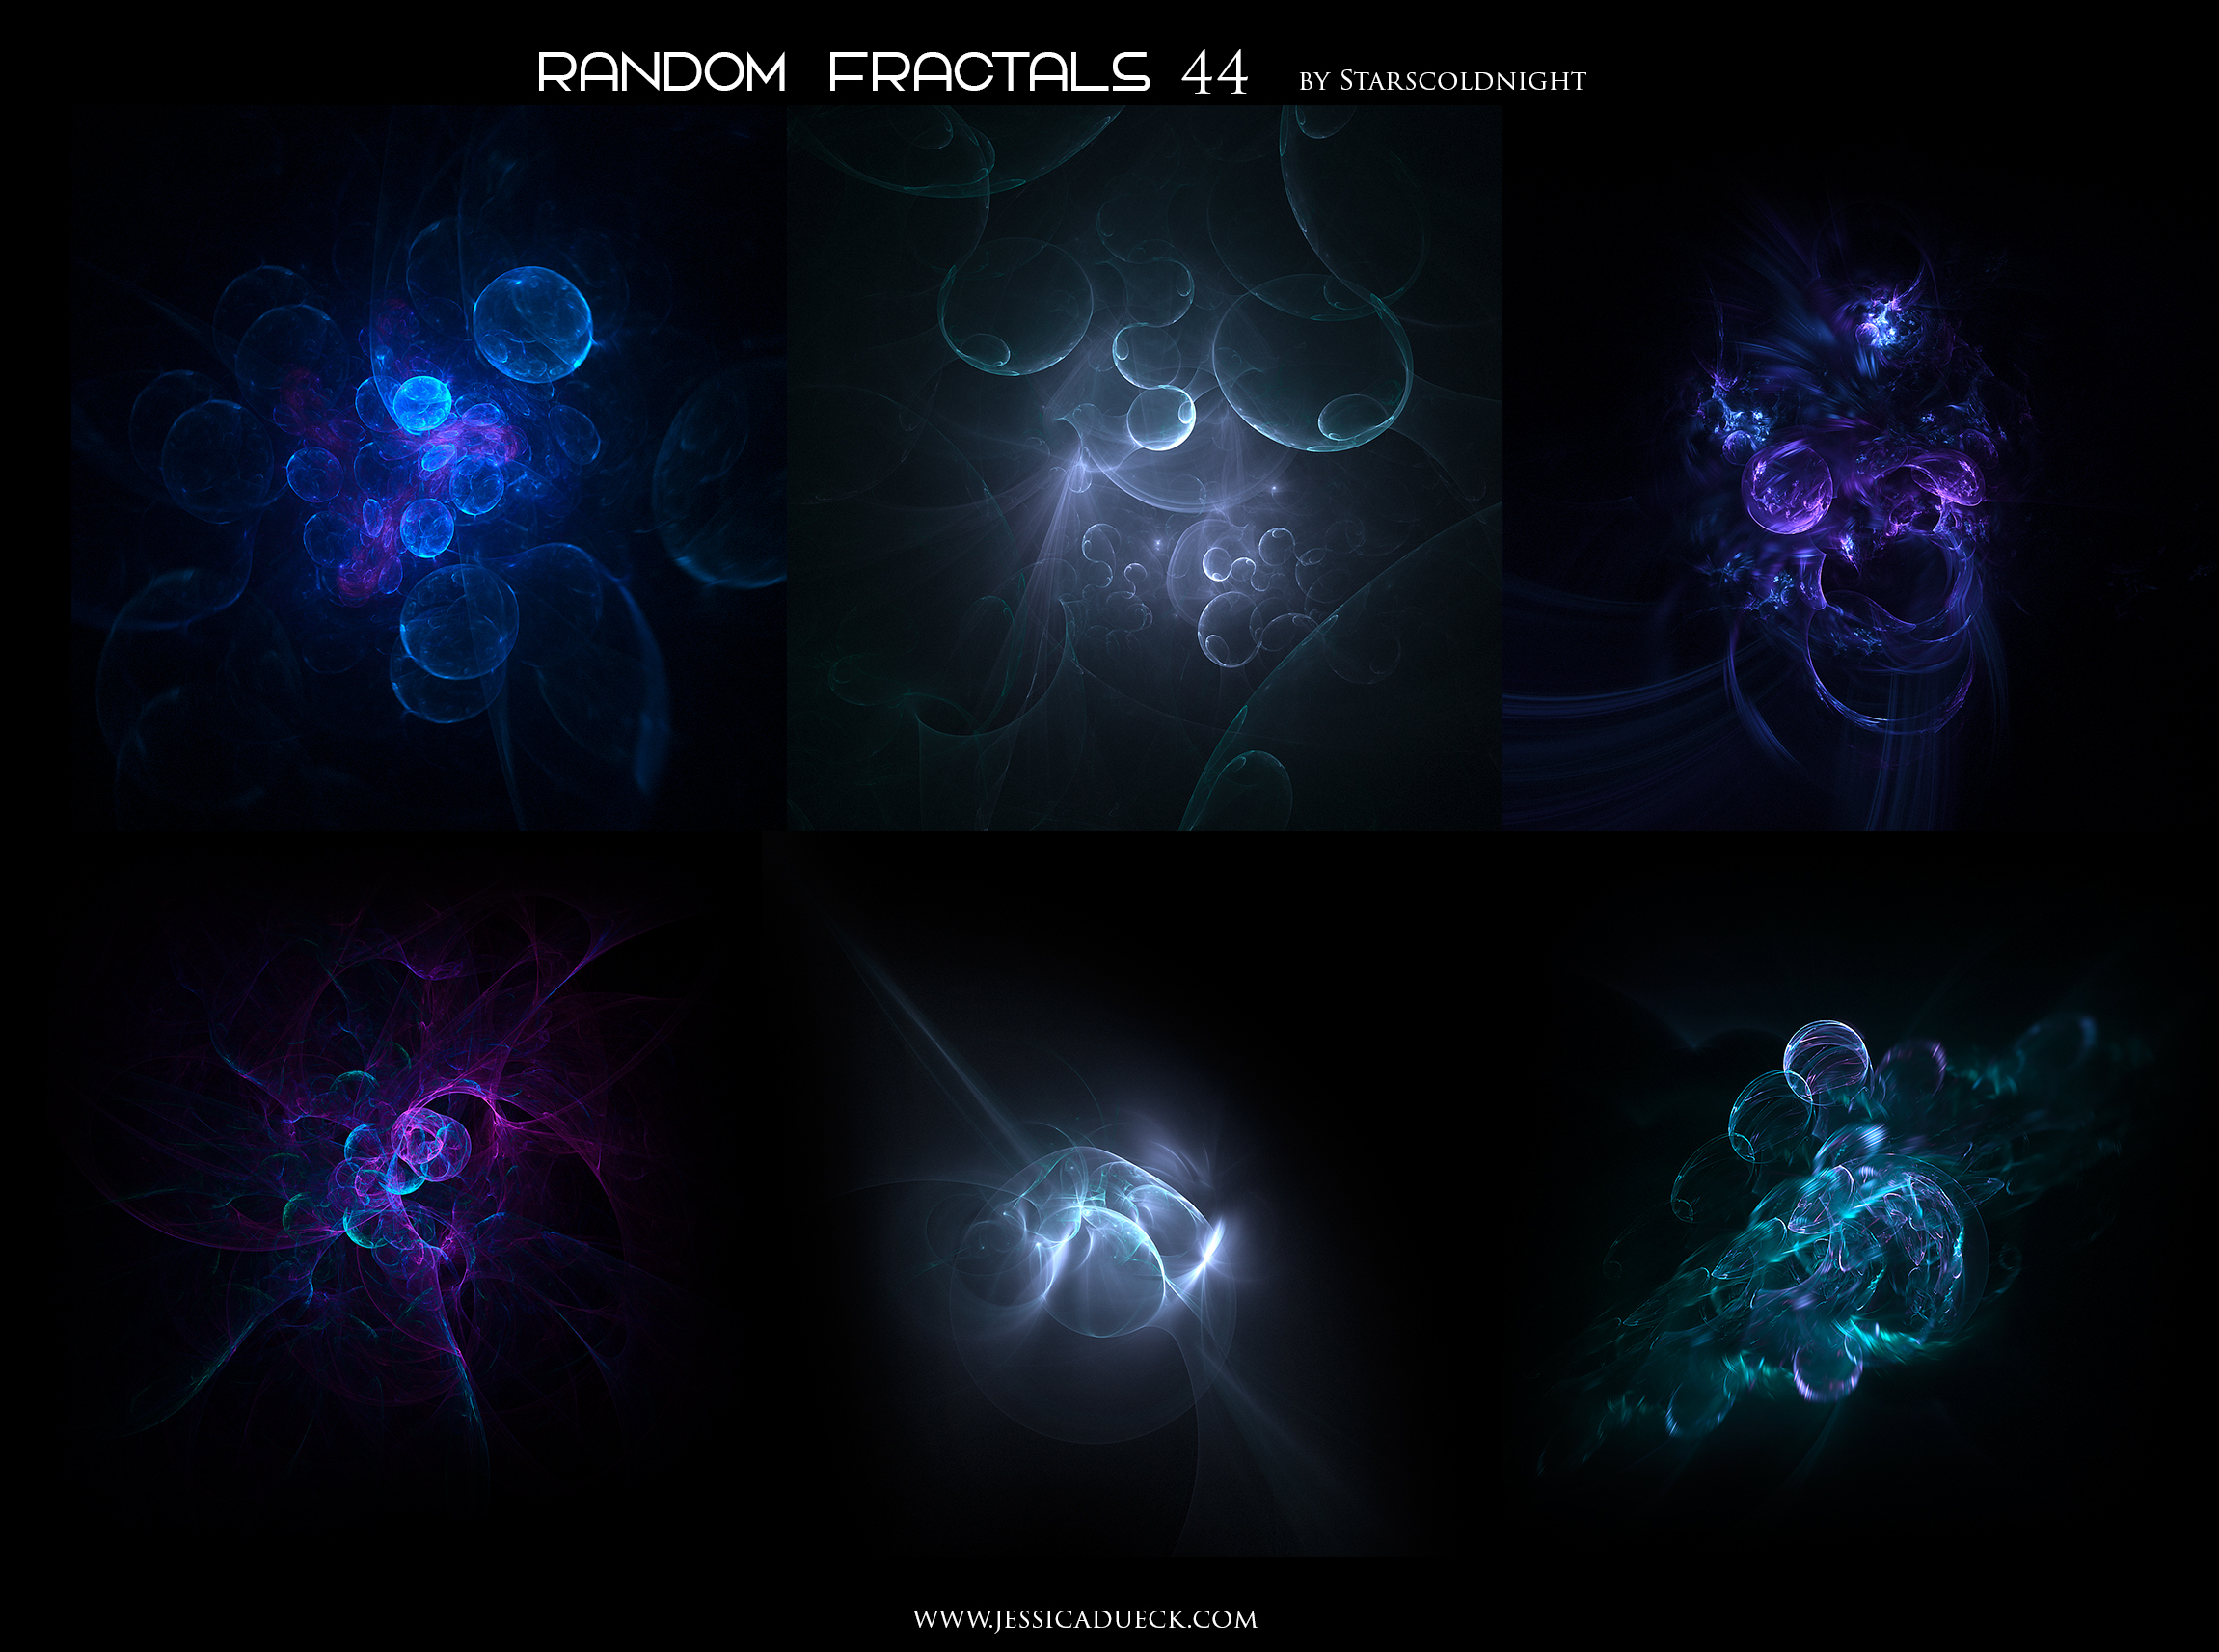 Random fractals 44 by Starscoldnight by StarsColdNight